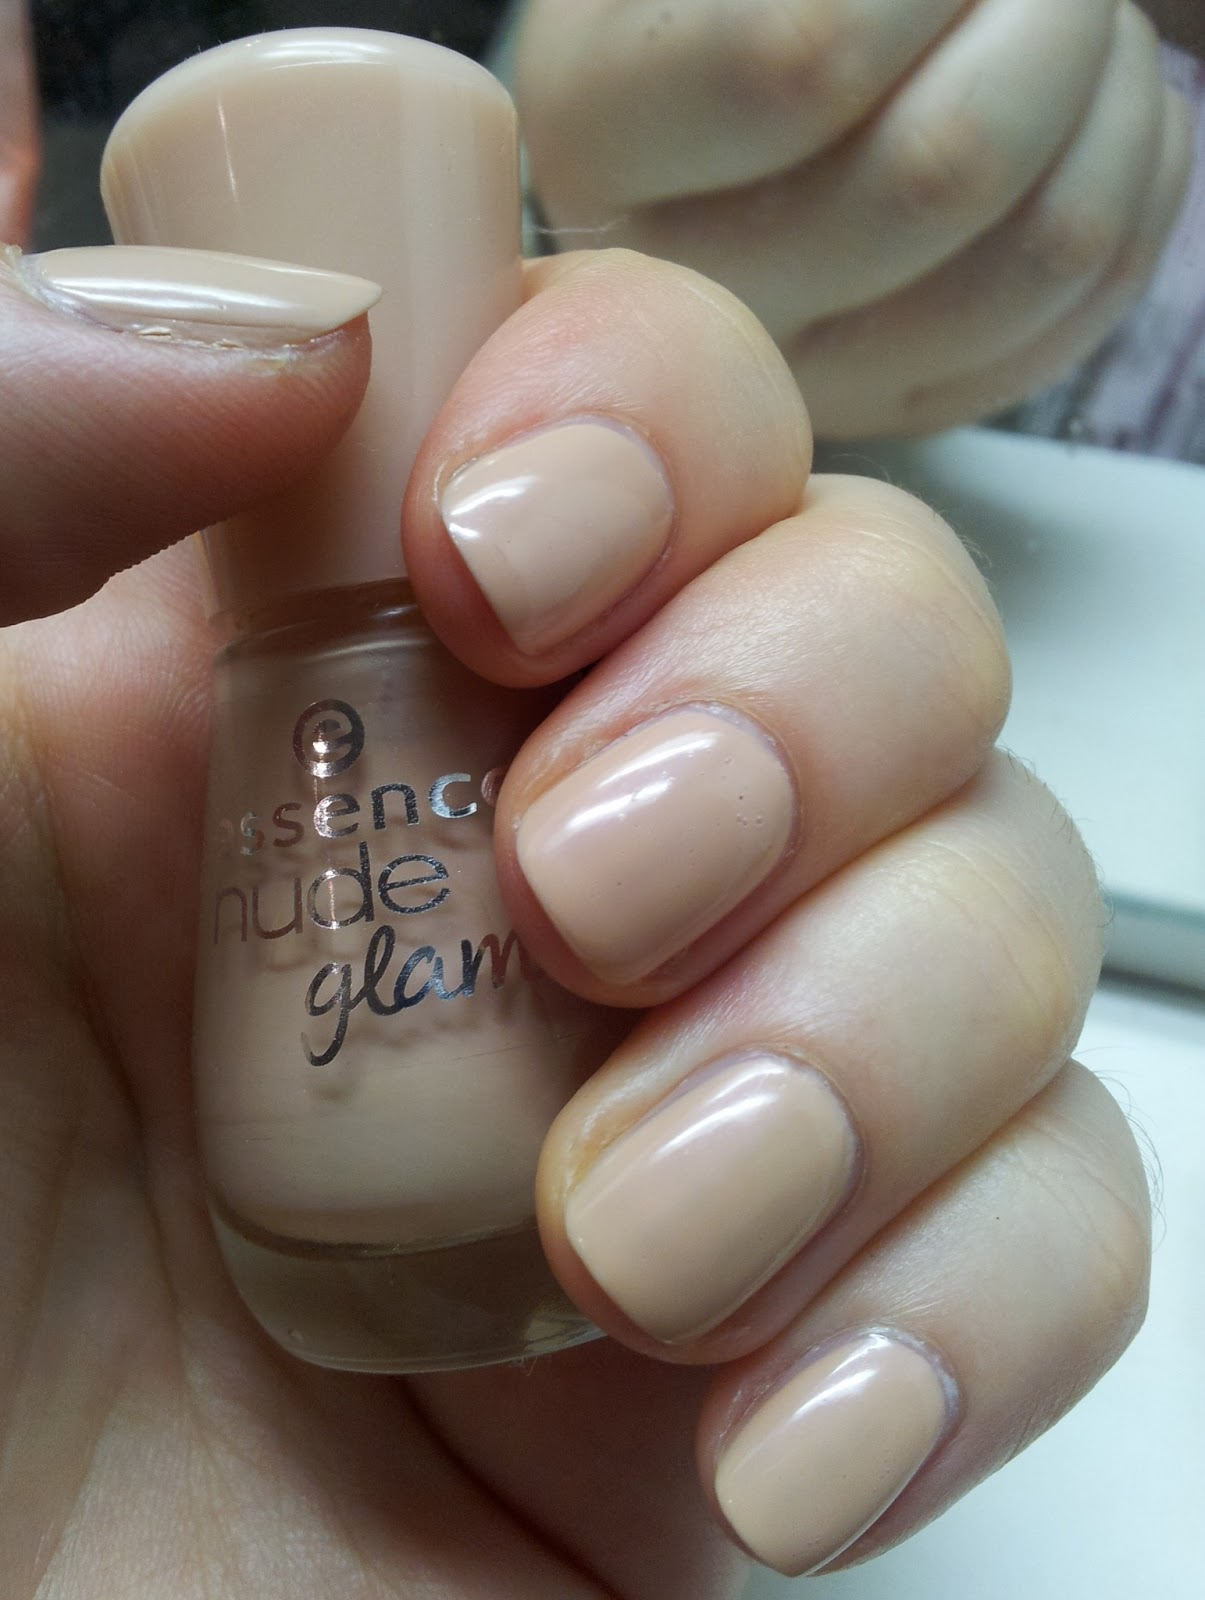 essence Nude glam Hazelnut Cream Pie